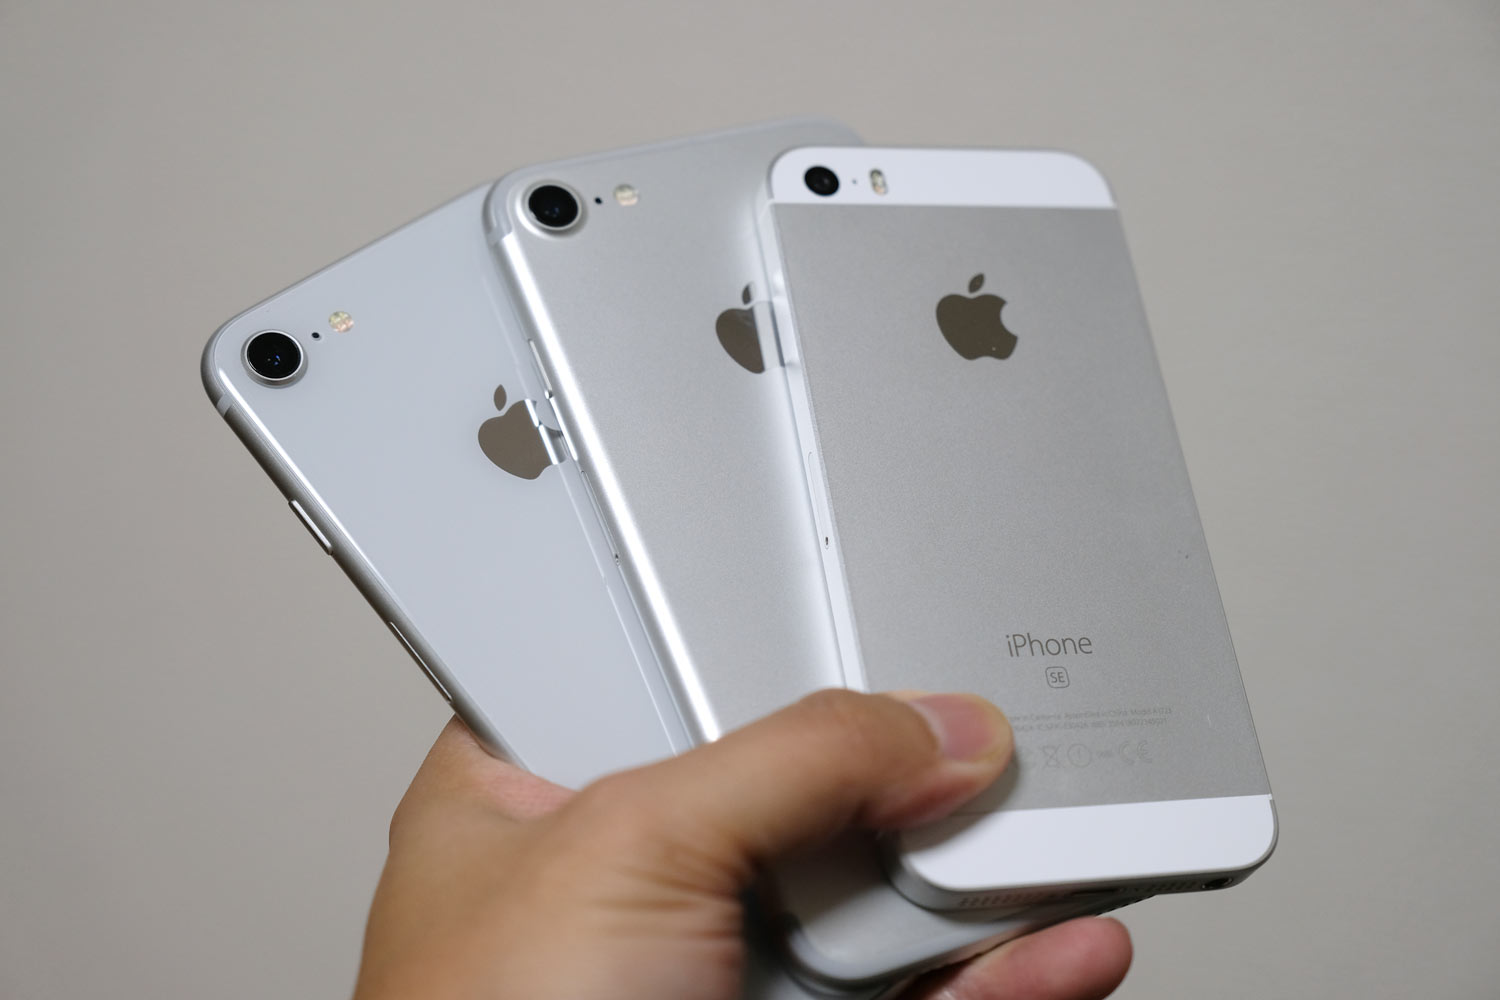 iPhone SEとiPhone 7/8